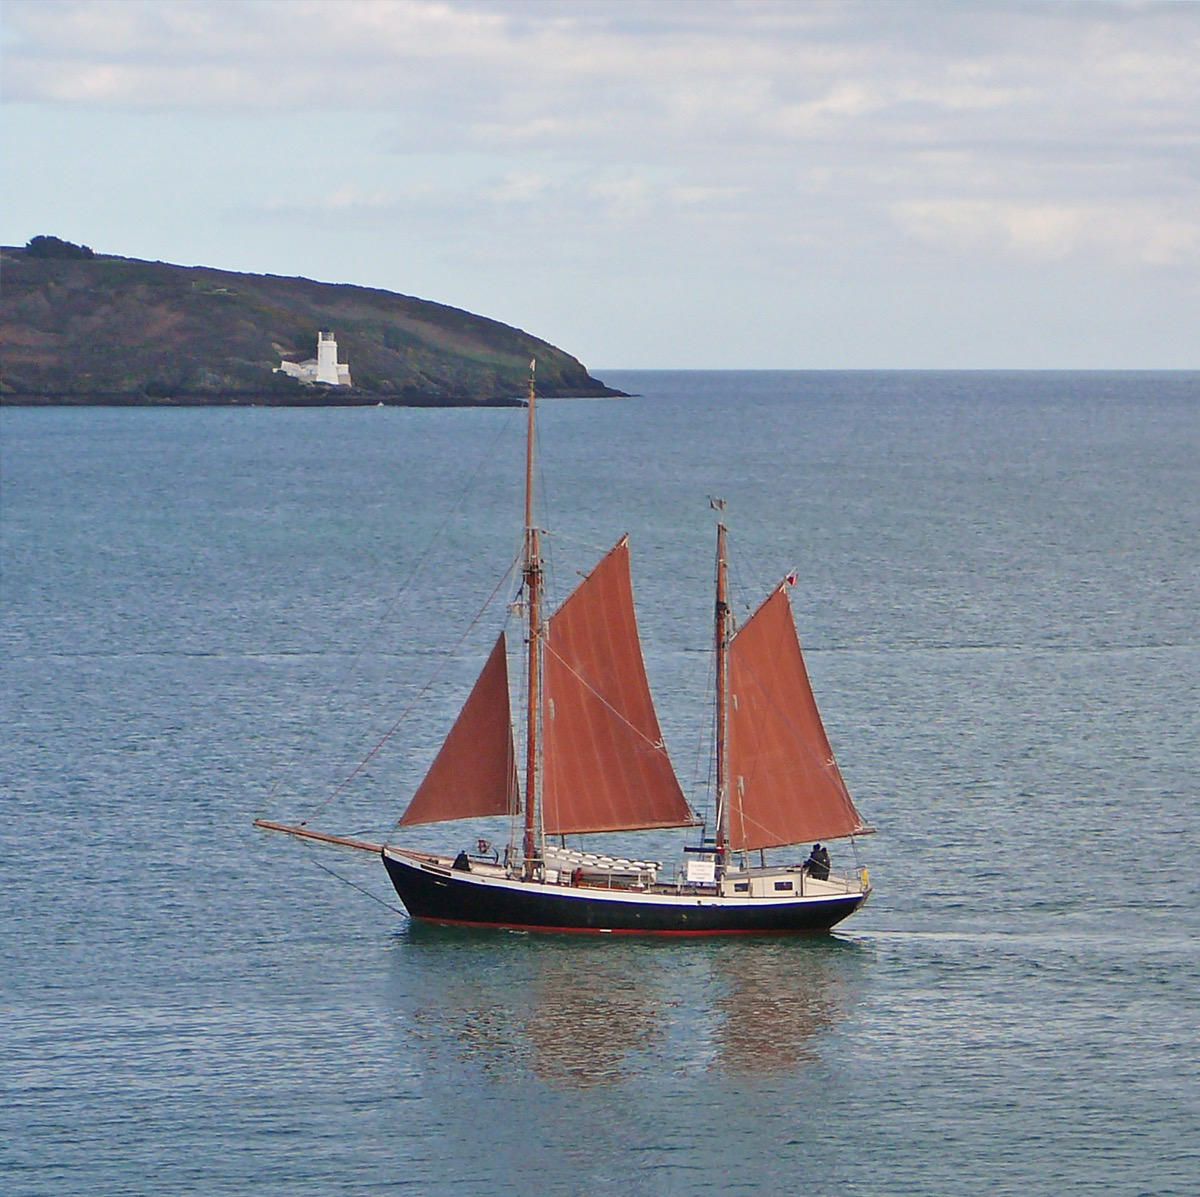 Ketch with maroon sails